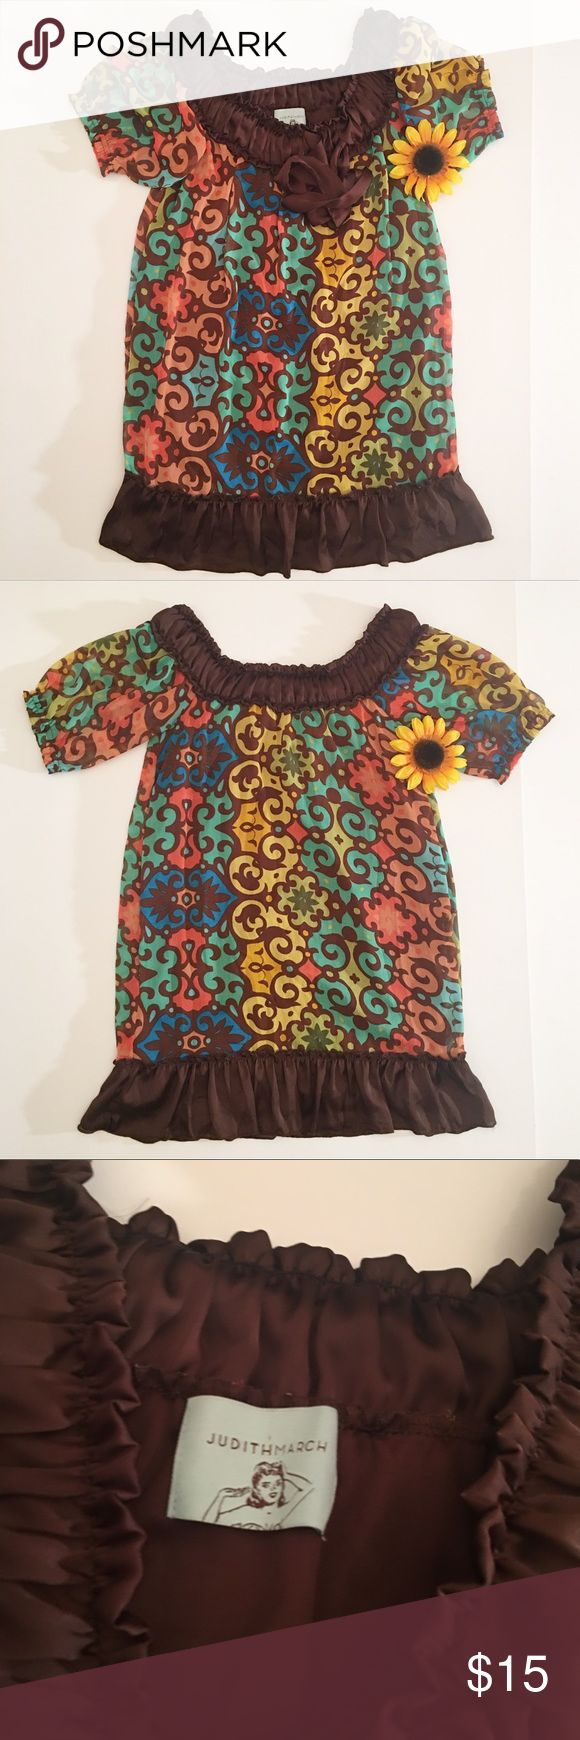 Brown/multi colored Judith March ruffle dress s Good used condition Judith March dress in a size small. Gorgeous brown ruffles with a multicolored print. The extra fabric near the neck ties into a bow. There are a few snags, like the one shown in the photo. They're not bad, just worth noting. Total length- approximately 32 inches, bust- approximately 14.5 inches. Judith March Dresses Midi